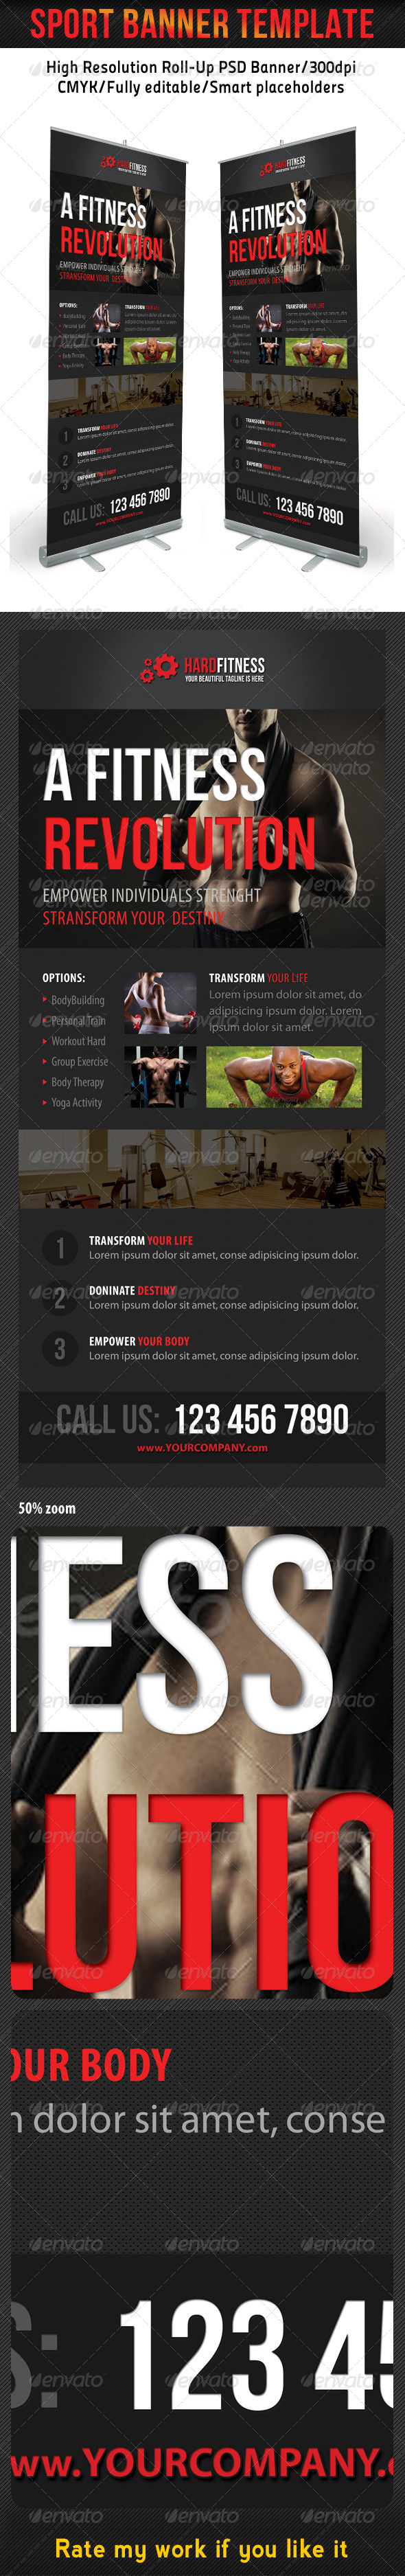 Sport Banner Template 16 - Signage Print Templates